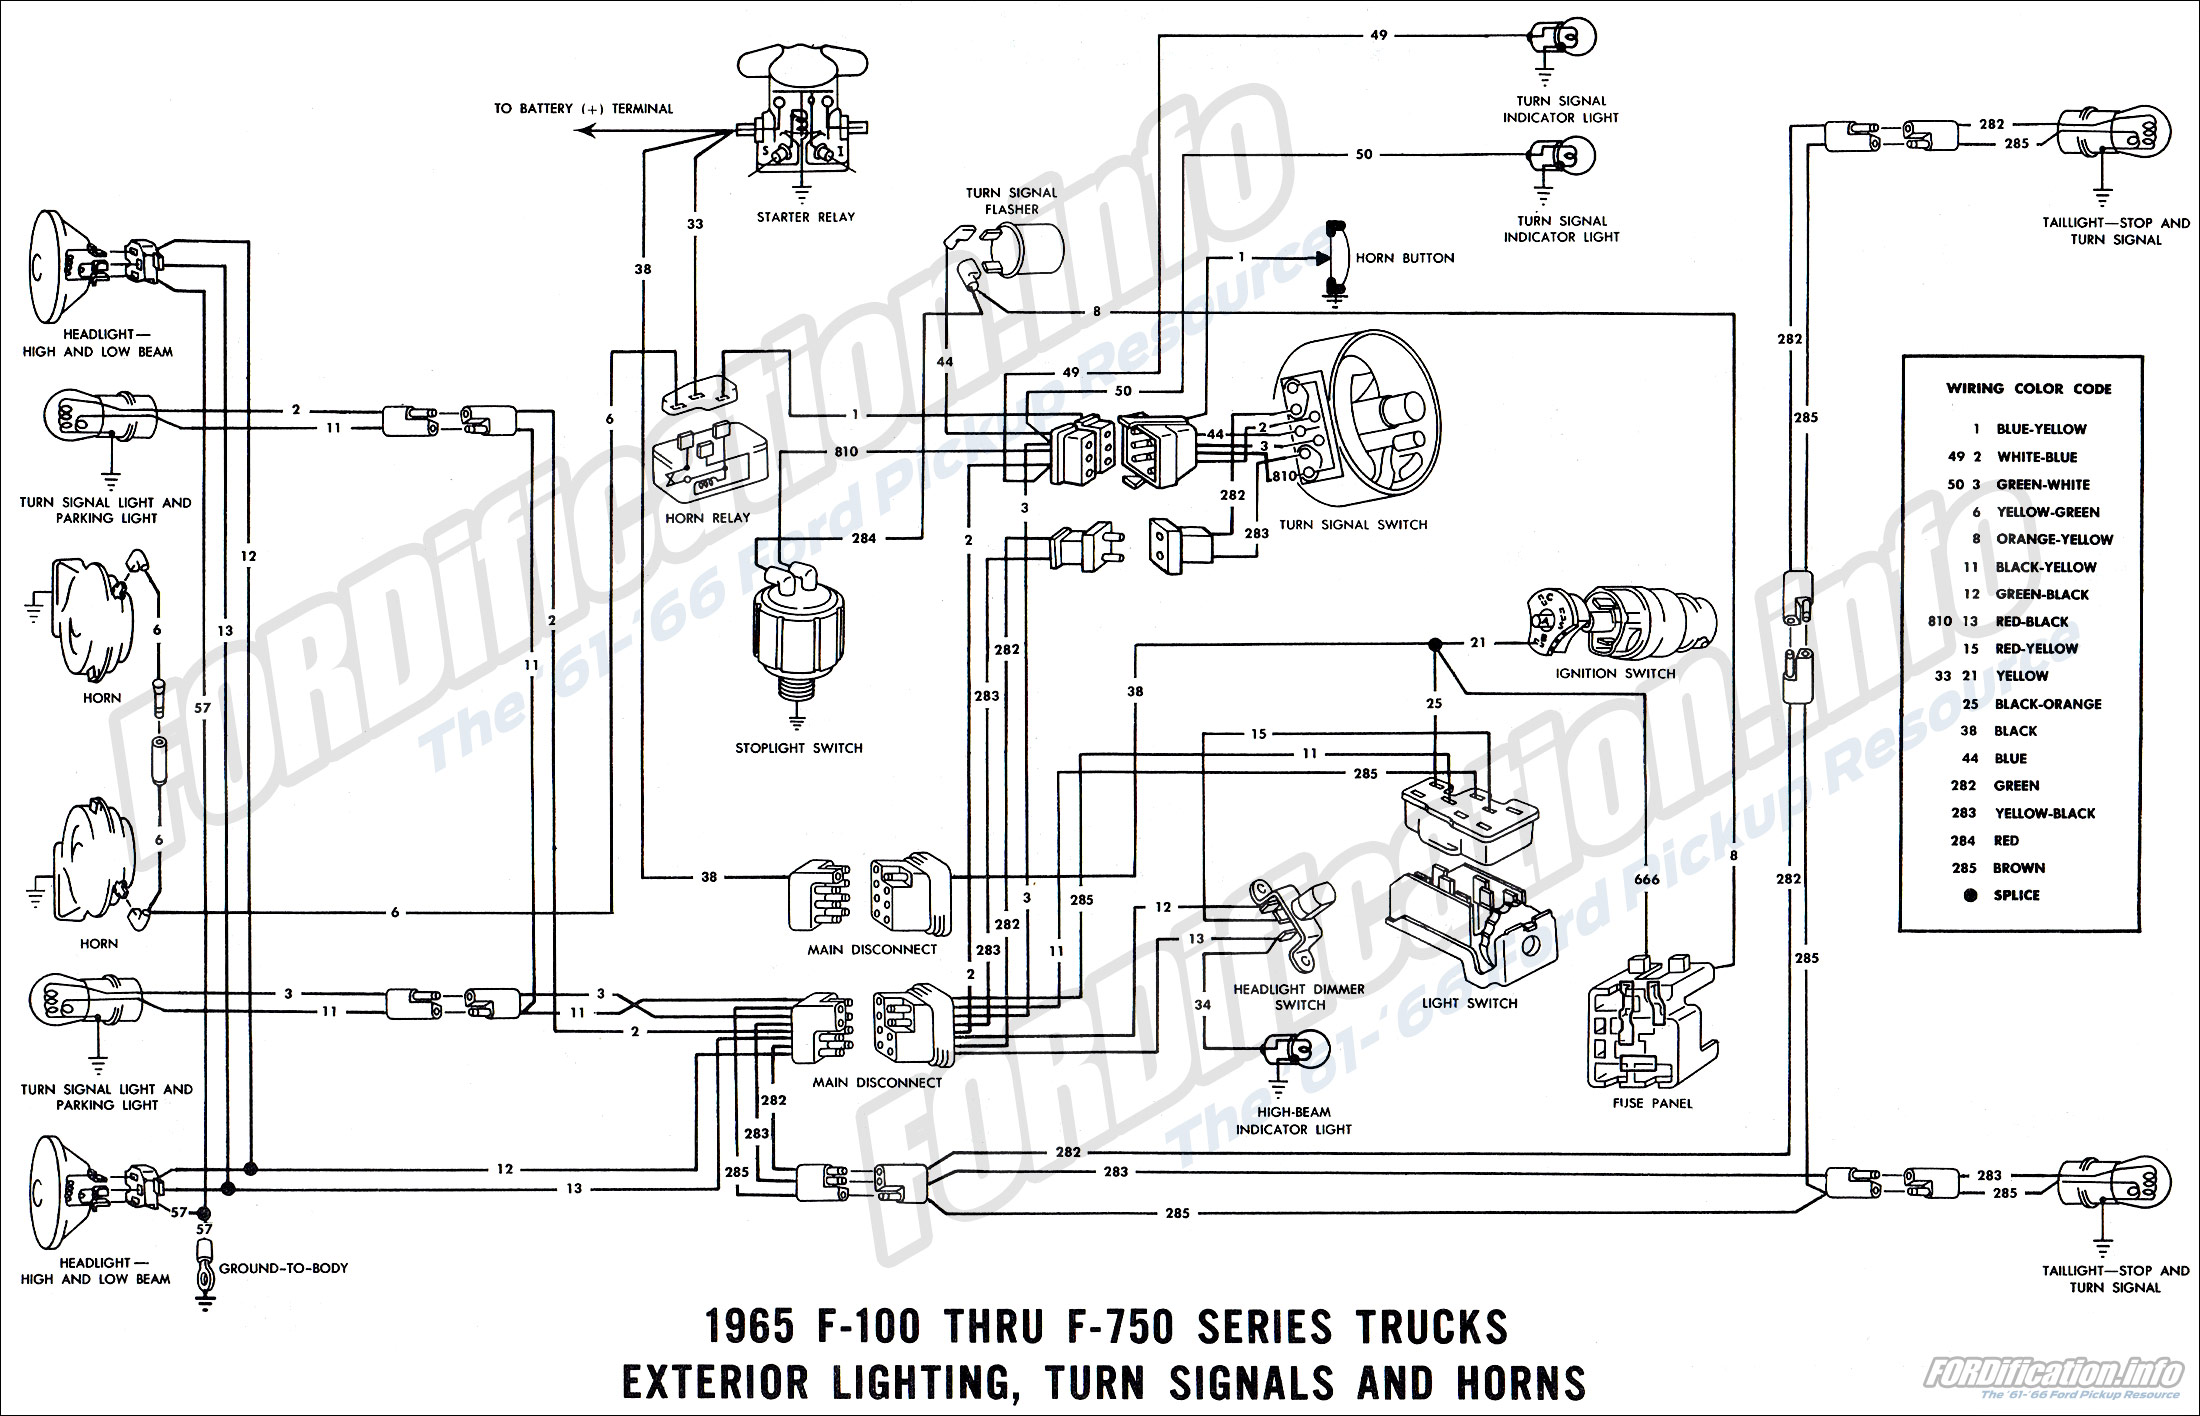 Ford Truck Wiring Diagrams : F wiring diagram images